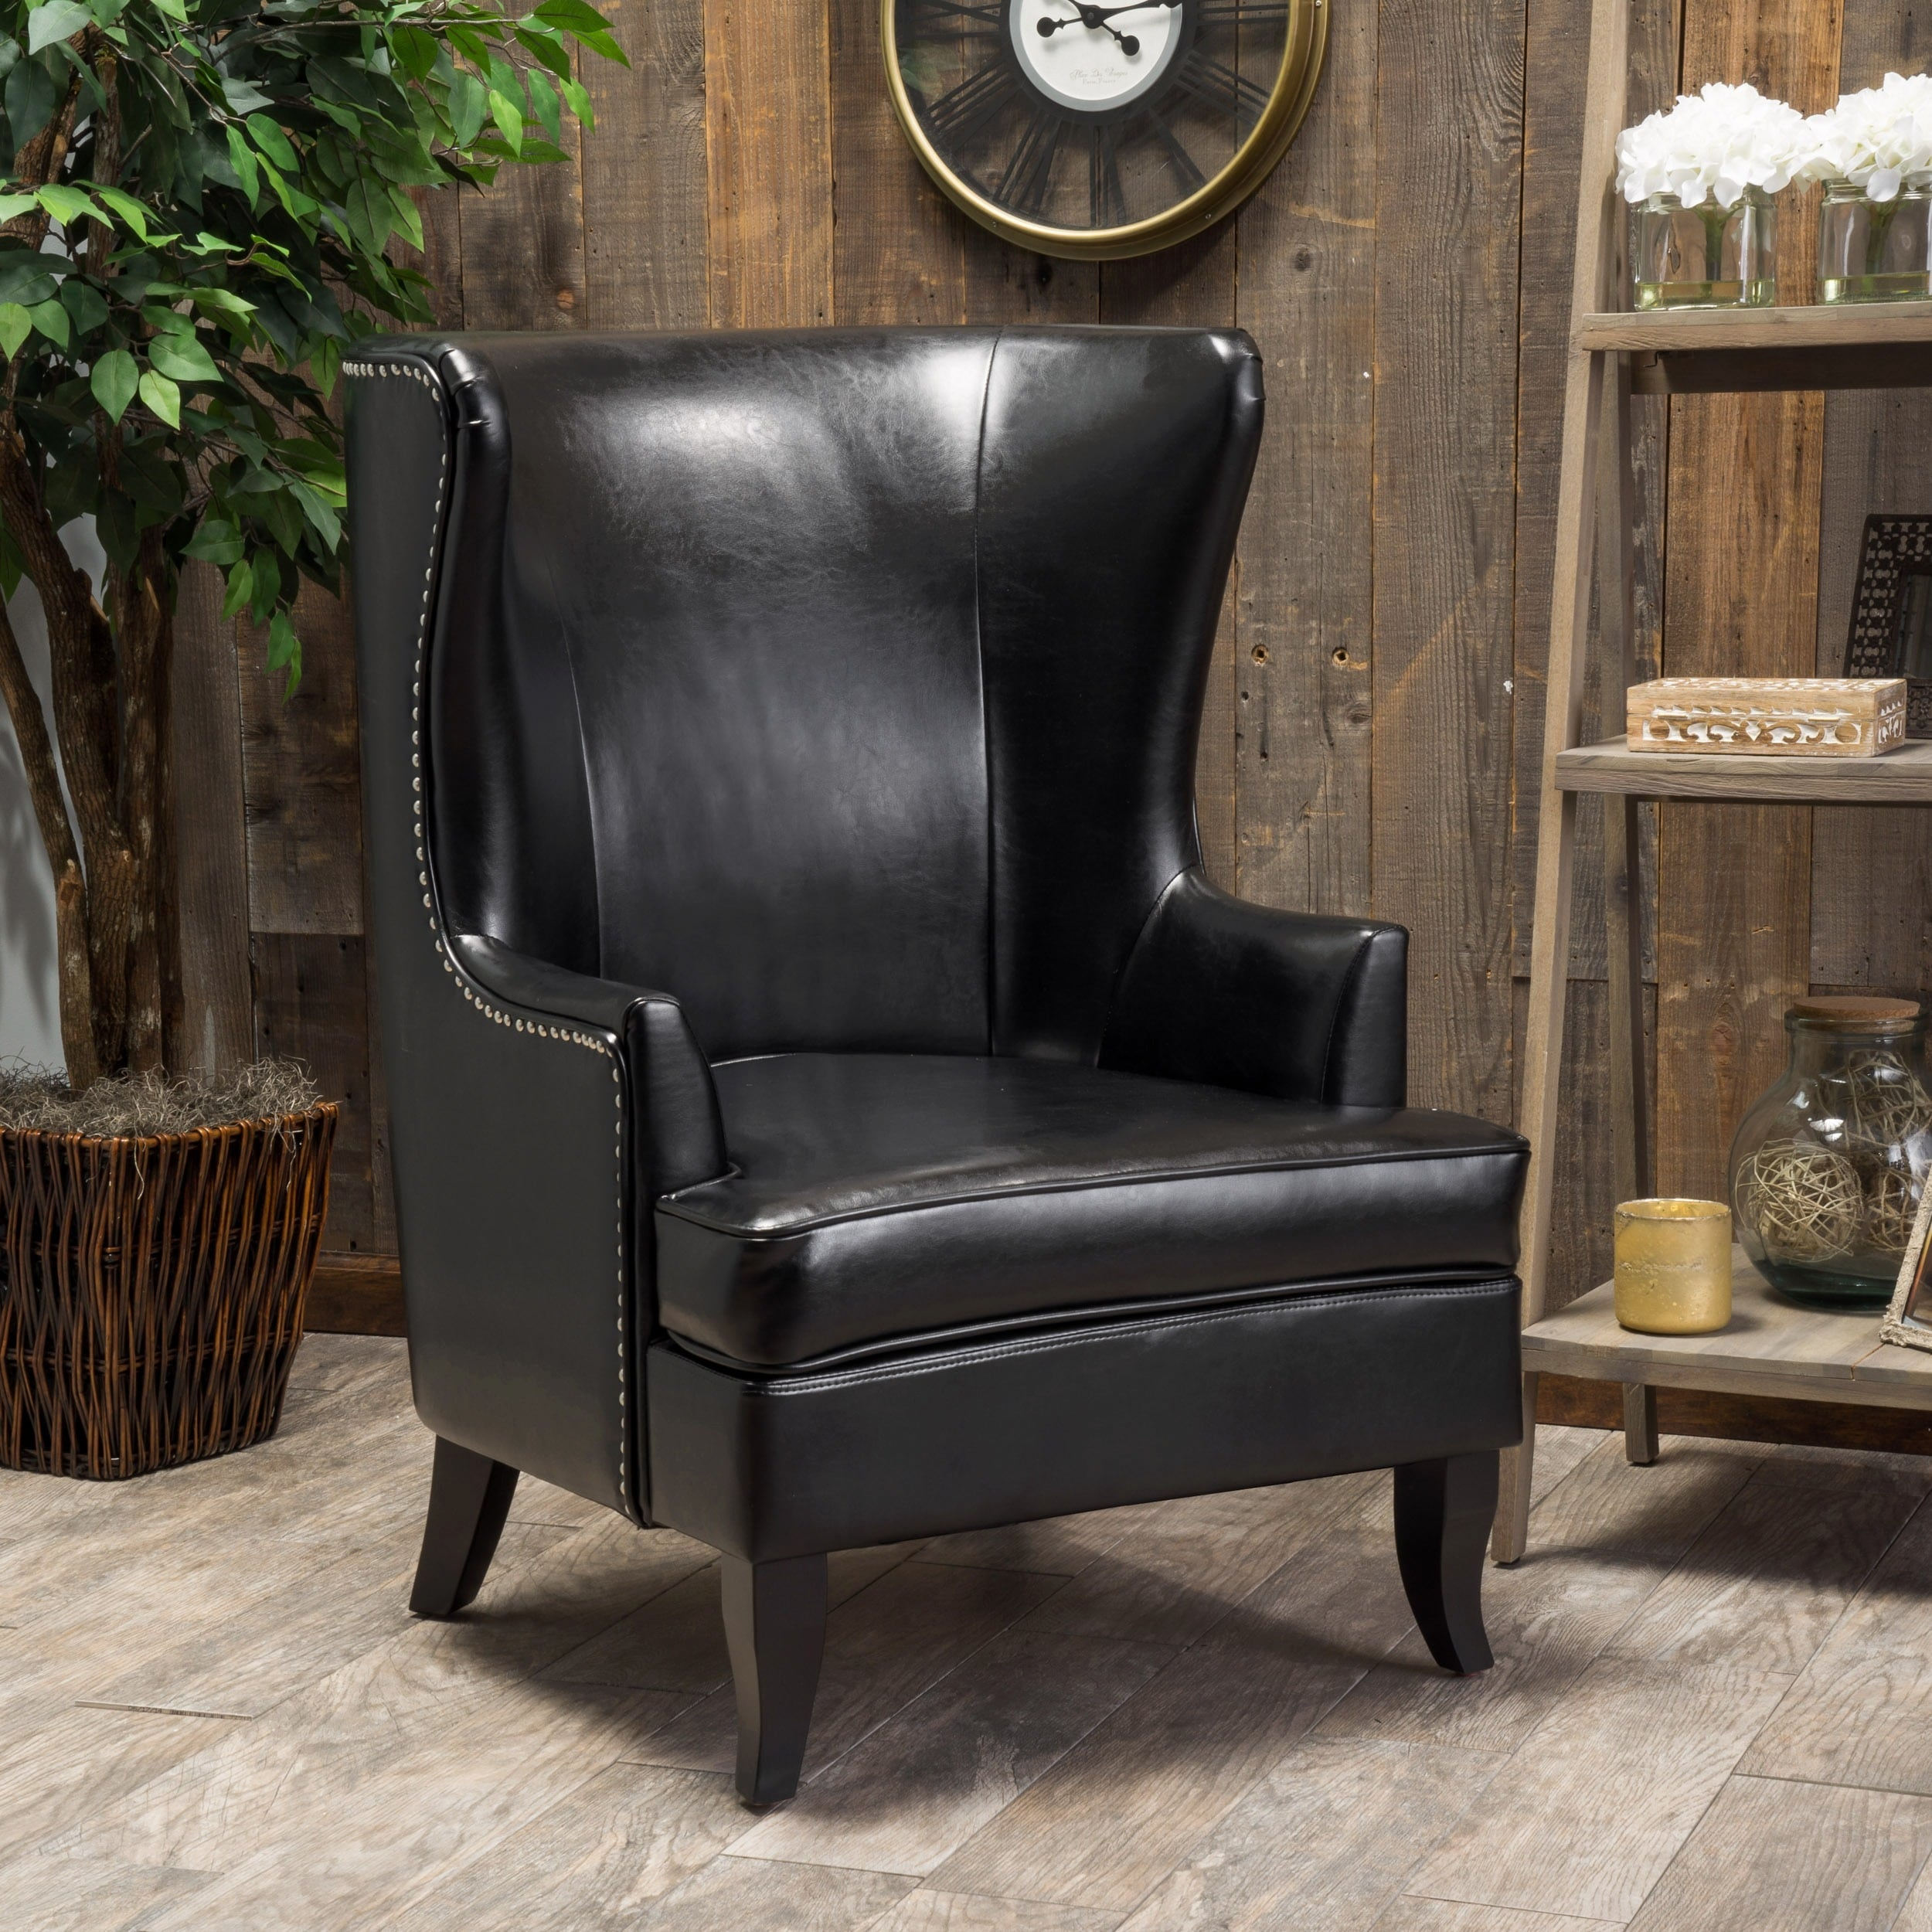 Canterburry High Back Bonded Leather Wing Chair by Christ...